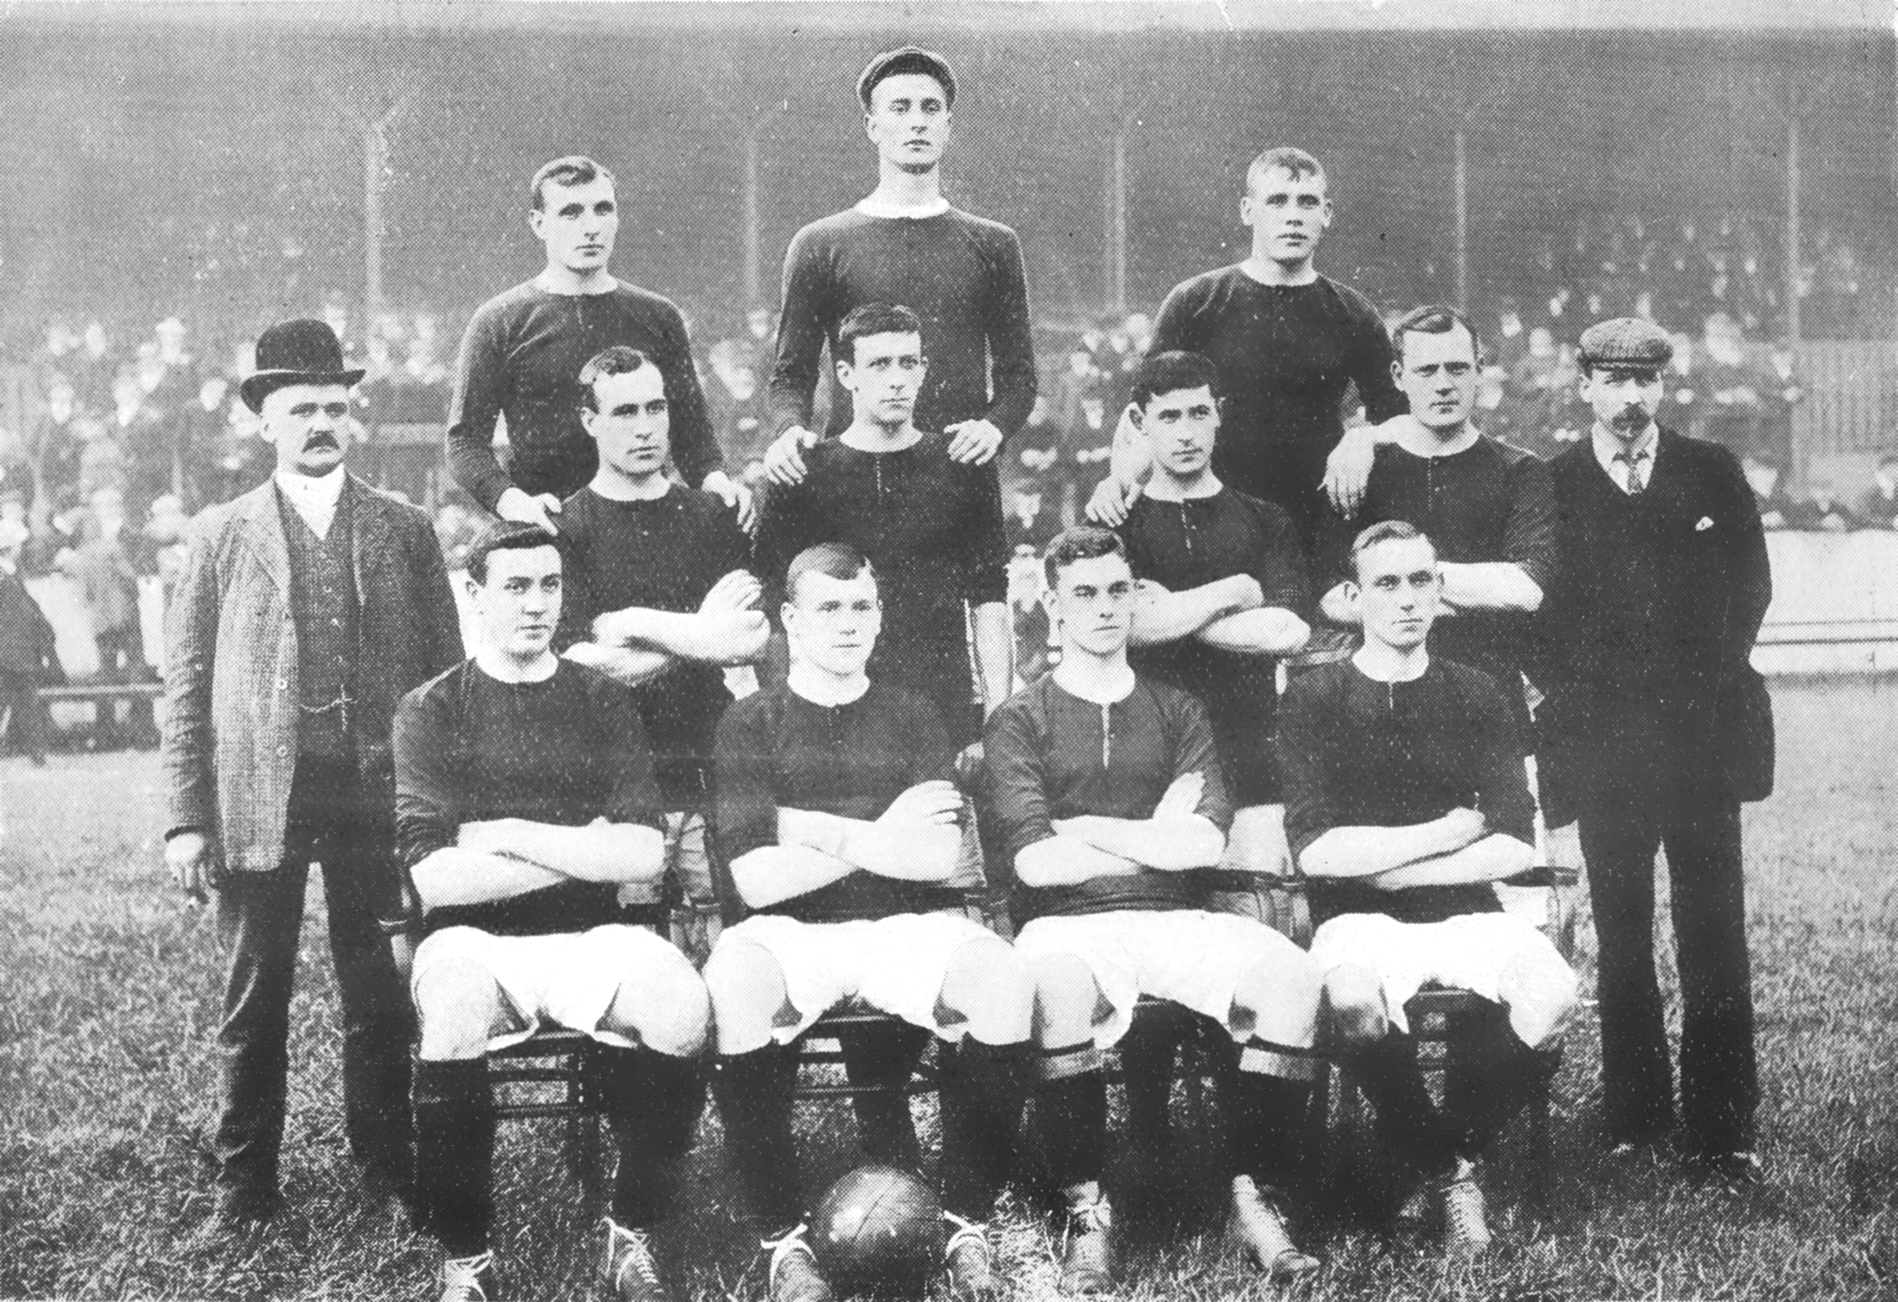 The Manchester United team at the start of the 1905-06 season in which they were runners up in Division 2 and promoted